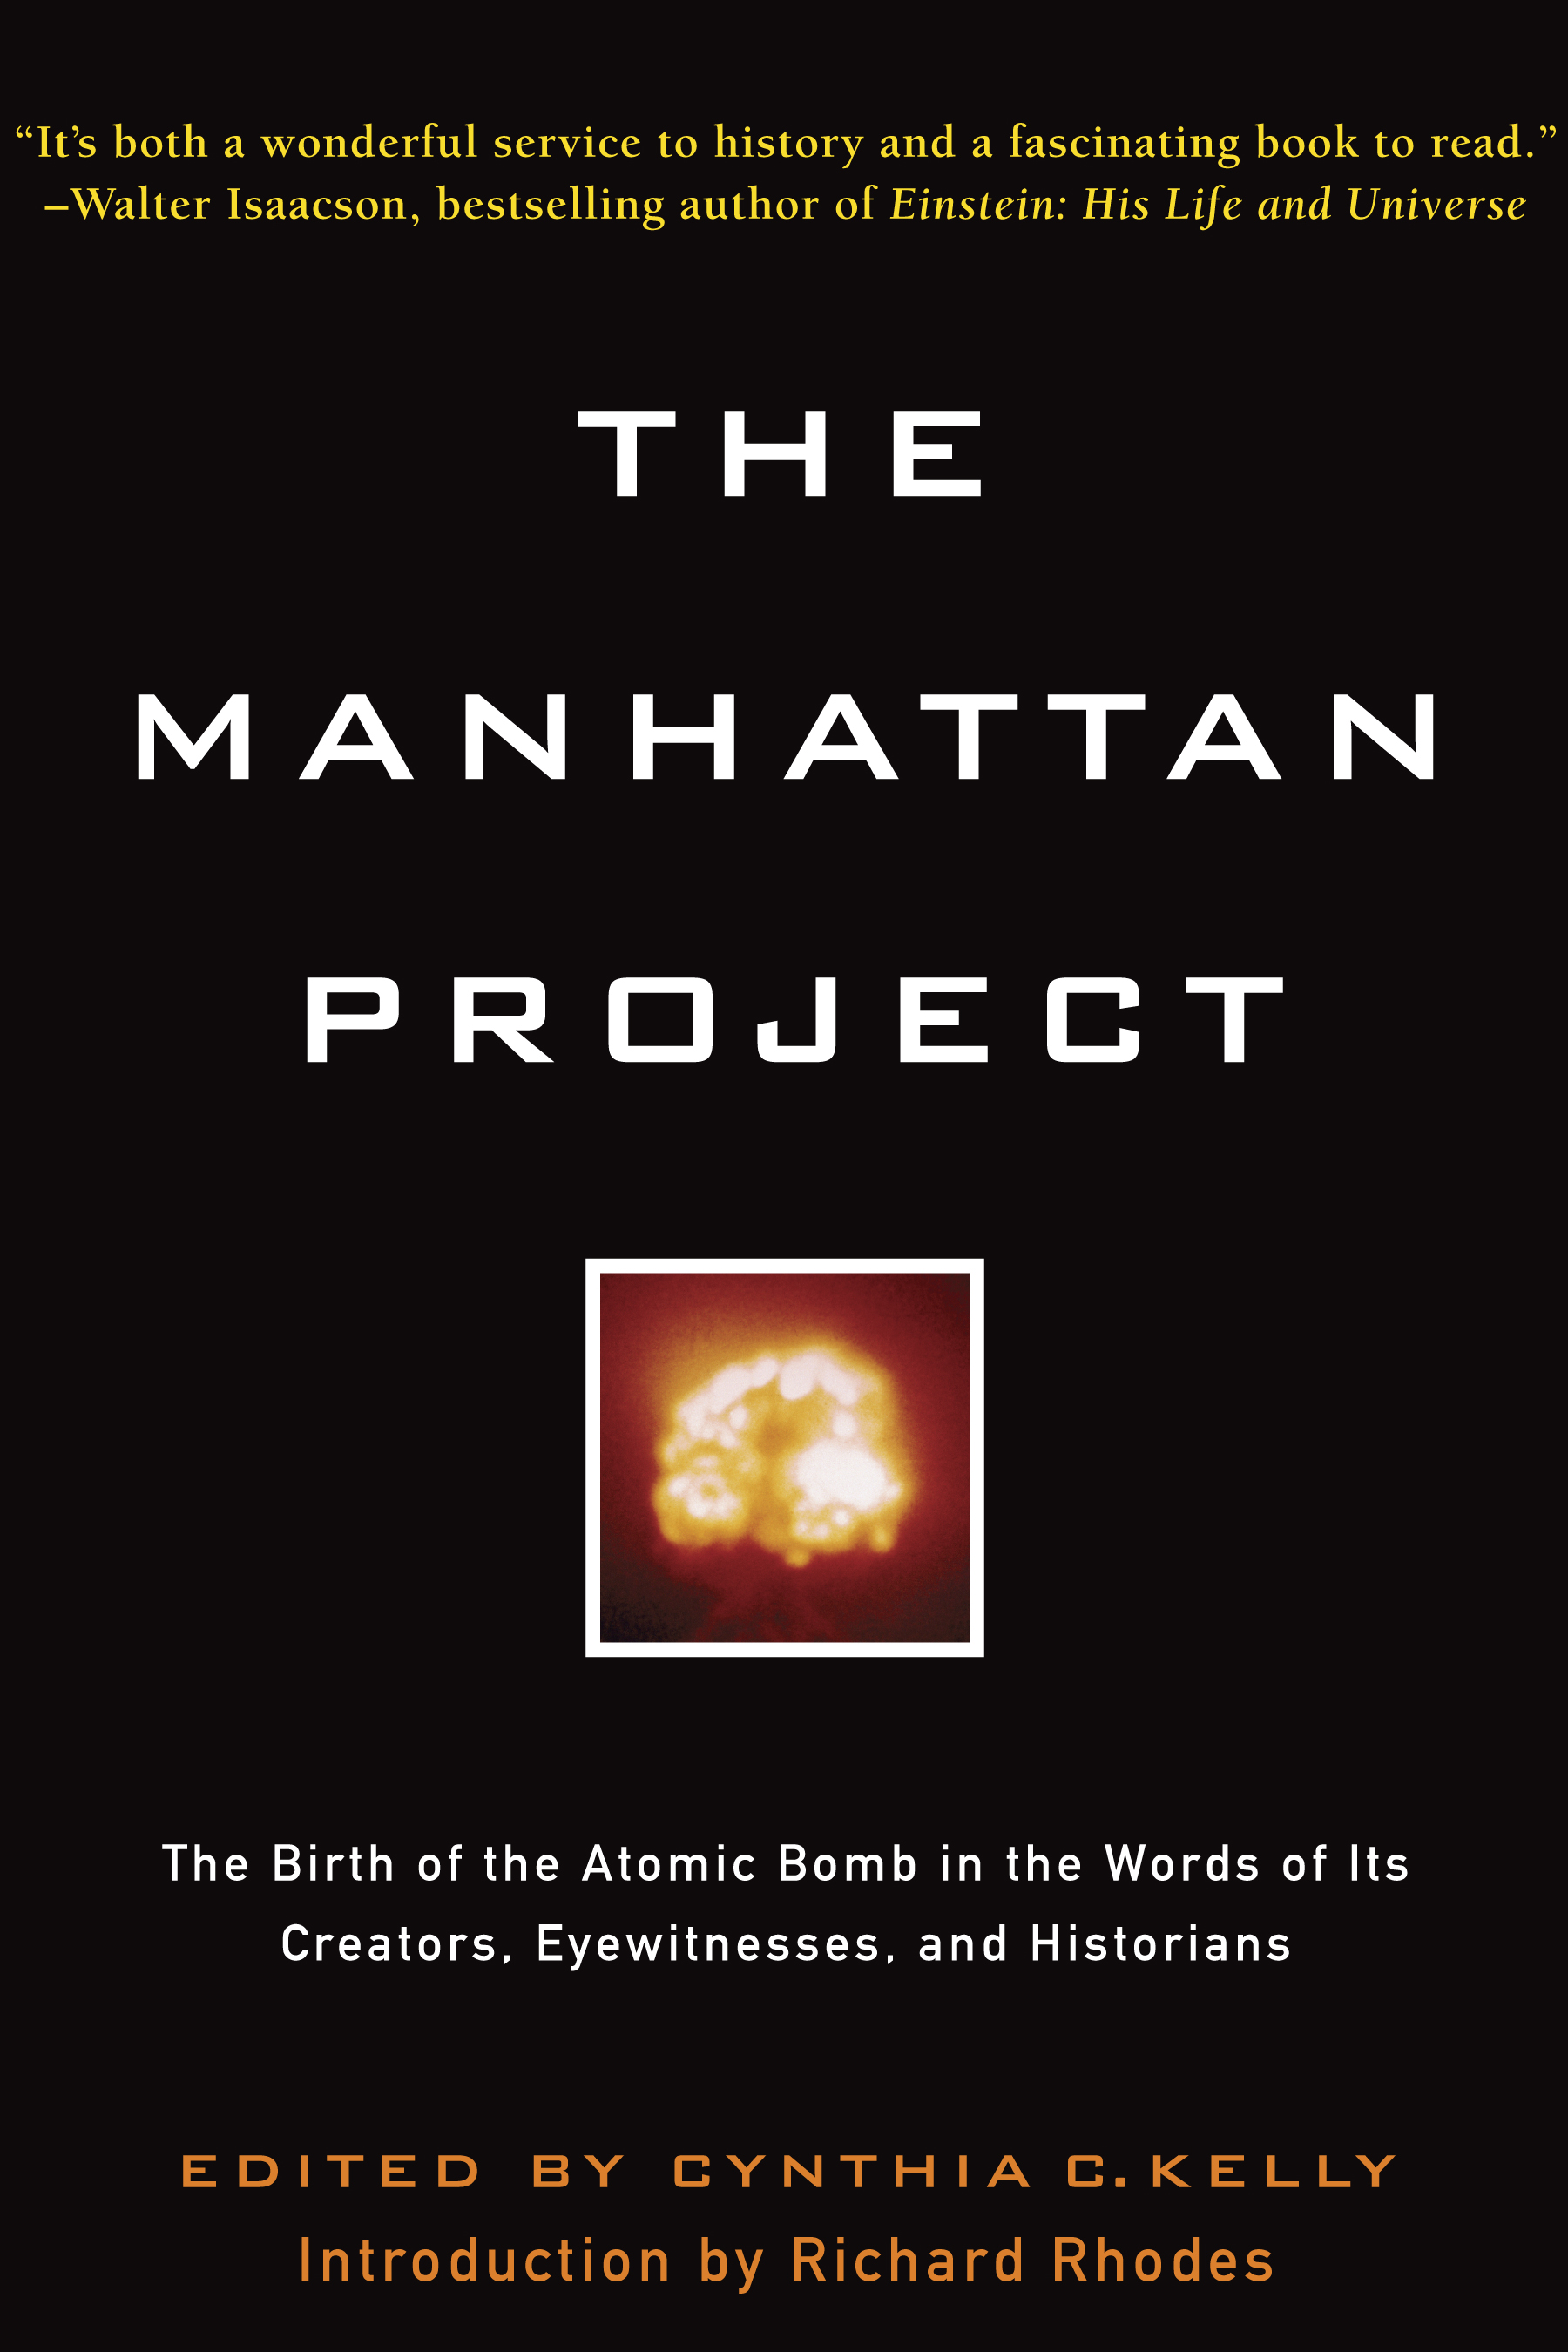 an introduction to the history of the manhattan project Introduction the development of atomic bombs under the auspices of the u s army's manhattan project during world war ii is considered to be the outstanding news story of the twentieth century in this book, a physicist and expert on the history of the project presents a comprehensive overview of this momentous achievement the first three.